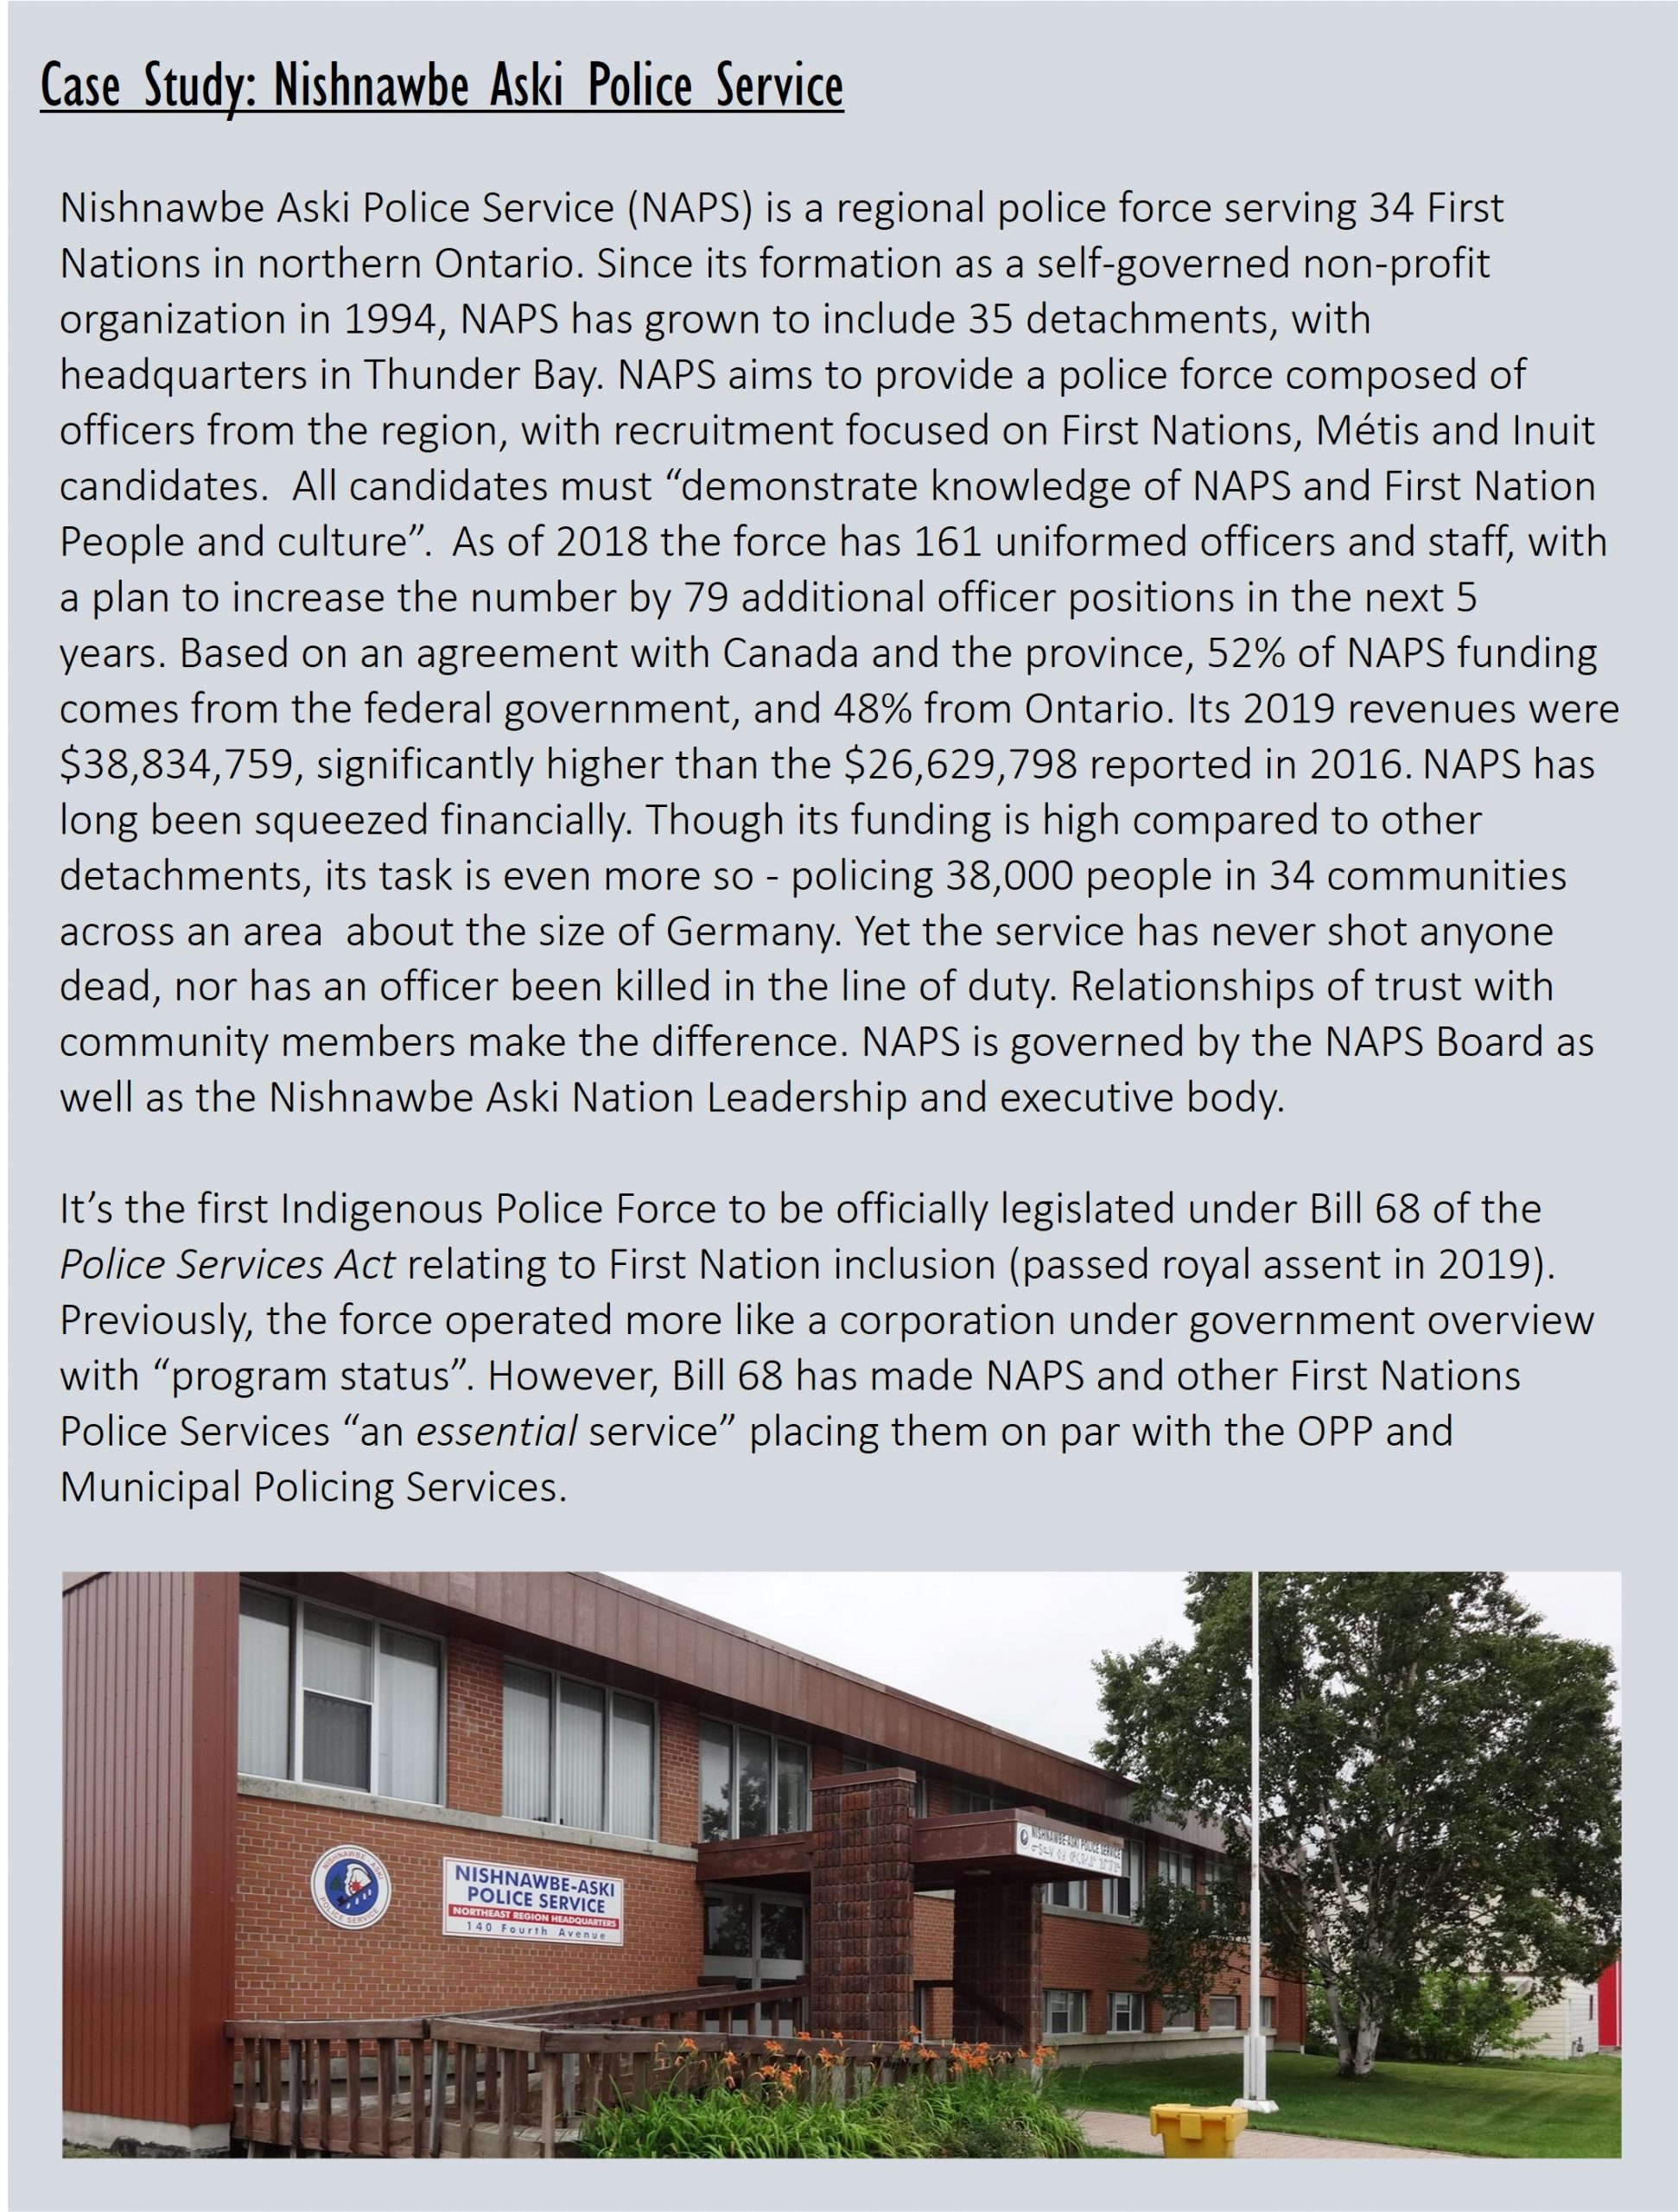 """Case Study: Nishnawbe Aski Police Service Nishnawbe Aski Police Service (NAPS) is a regional police force serving 34 First Nations in northern Ontario. Since its formation as a self-governed non-profit organization in 1994, NAPS has grown to include 35 detachments, with headquarters in Thunder Bay.NAPS aims to provide a police force composed of officers from the region, with recruitment focused on First Nations, Métis and Inuit candidates. All candidates must """"demonstrate knowledge of NAPS and First Nation People and culture"""". As of 2018 the force has 161 uniformed officers and staff, with a plan to increase the number by 79 additional officer positions in the next 5 years.Based on an agreement with Canada and the province, 52% of NAPS funding comes from the federal government, and 48% from Ontario. Its 2019 revenues were $38,834,759, significantly higher than the $26,629,798 reported in 2016. NAPS has long been squeezed financially.Though its funding is high compared to other detachments, its task is even more so - policing 38,000 people in 34 communities across an area about the size of Germany. Yet the service has never shot anyone dead, nor has an officer been killed in the line of duty. Relationships of trust with community members make the difference. NAPS is governed by the NAPS Board as well as the Nishnawbe Aski Nation Leadership and executive body. It's the first Indigenous Police Force to be officially legislated under Bill 68 of the Police Services Act relating to First Nation inclusion (passed royal assent in 2019). Previously, the force operated more like a corporation under government overview with """"program status"""". However, Bill 68 has made NAPS andother First Nations Police Services """"an essential service"""" placing them on par with the OPP and Municipal Policing Services."""